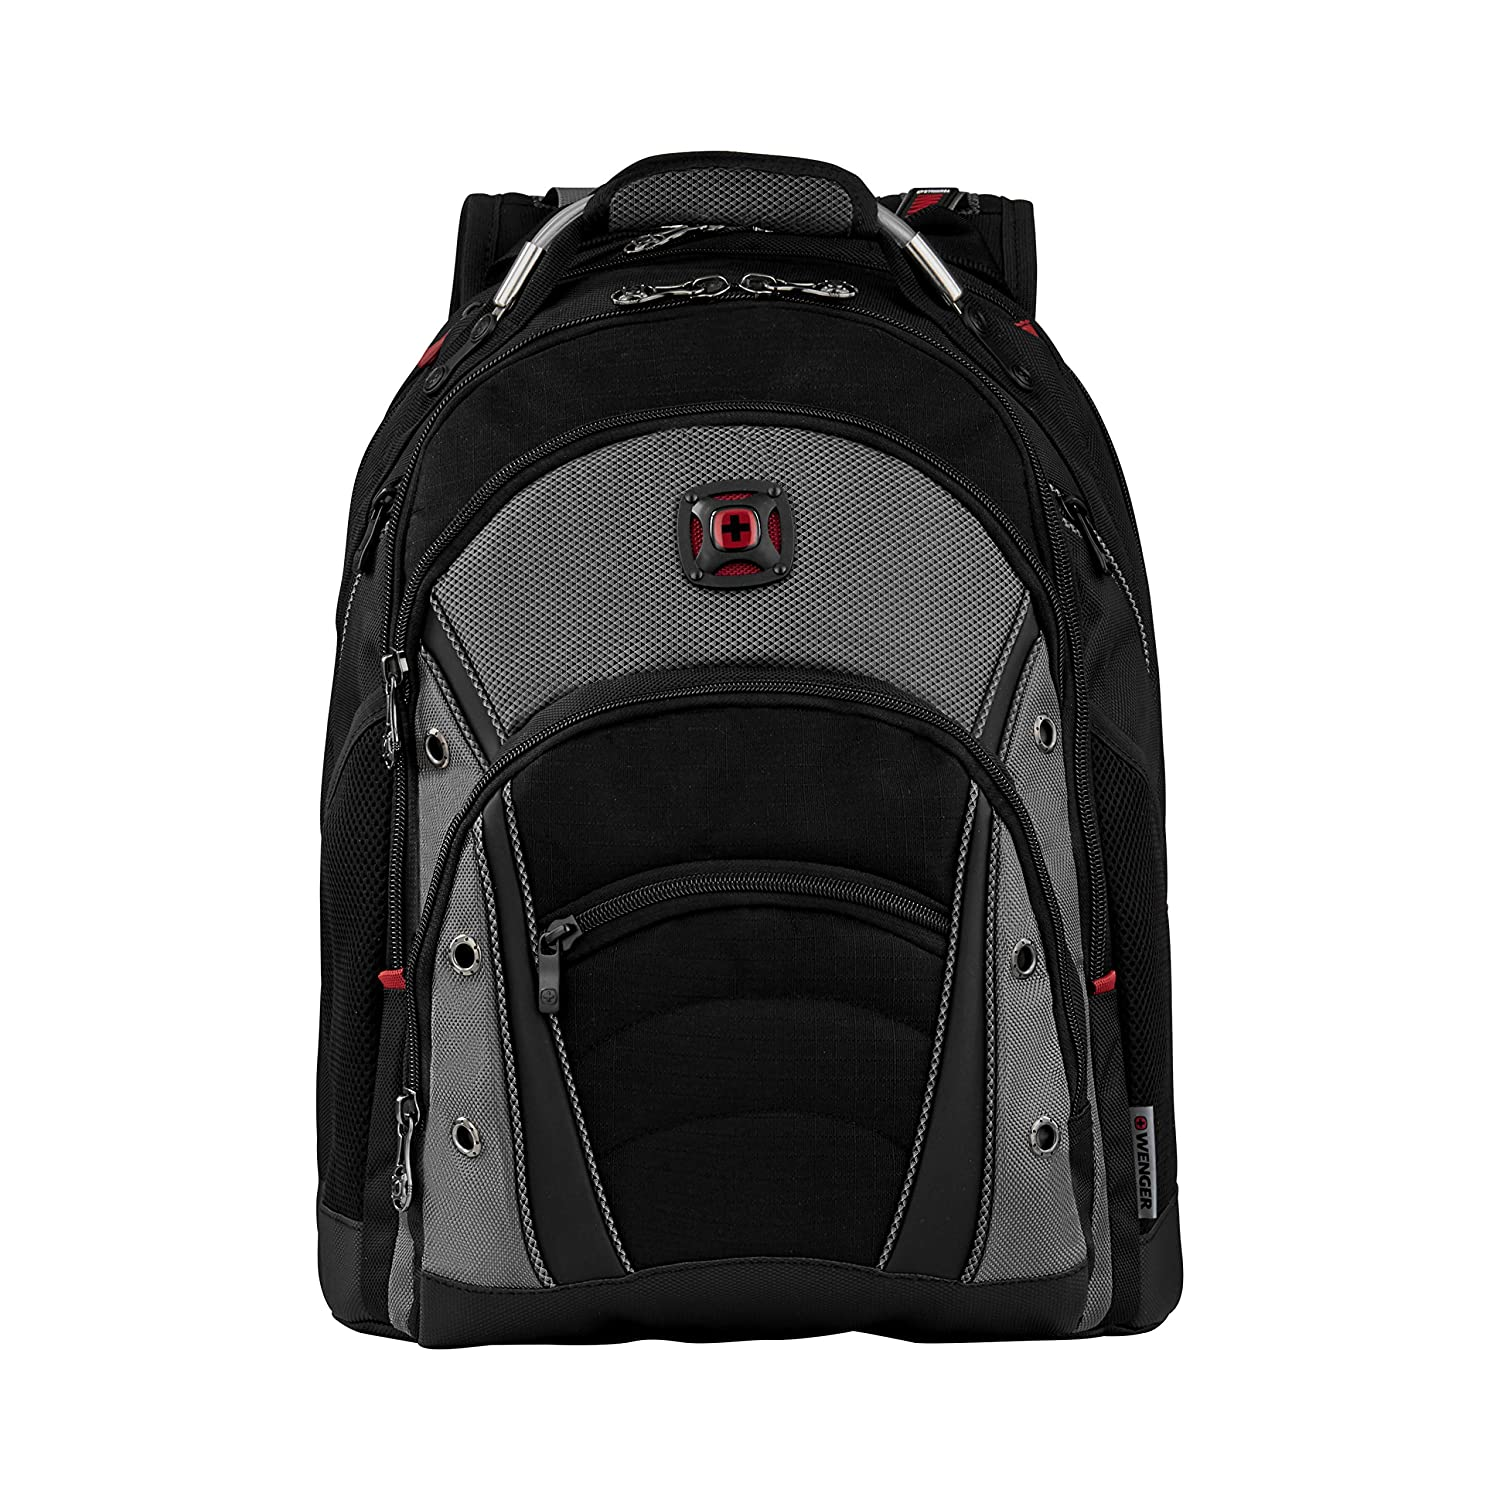 9f0009b3027 Amazon.com  Wenger Synergy Backpack